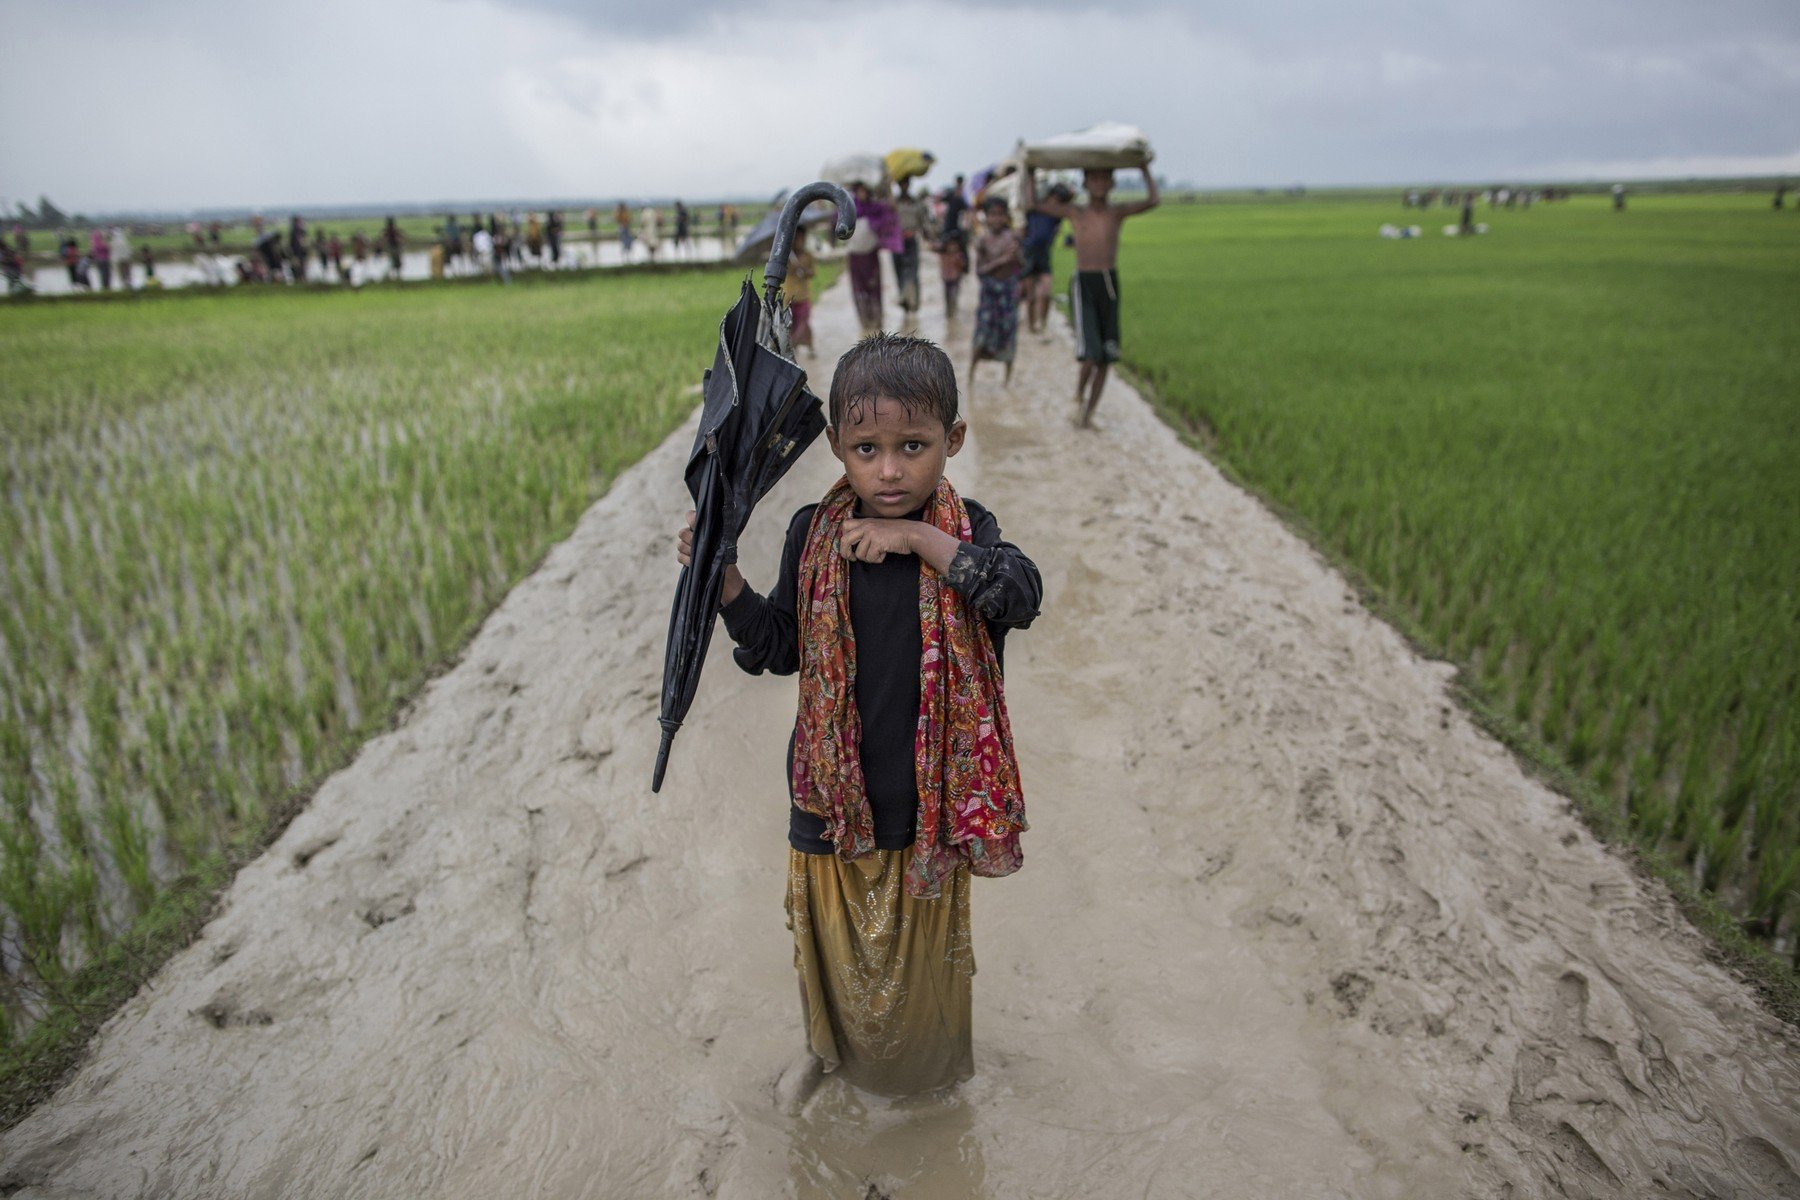 September 3, 2017 - Cox'S Bazar, Chittagong, Bangladesh - Asma, 9, from Myanmar who has crossed the border with her parents into Bangladesh on 3 September, after three days of walking to escape violence in her village..In a grueling journey to cross into safety, the strongest carry the weakest in the damp paddy fields and heavy monsoon rainfall. The rain is heavy and frequent, and makes the ground incredibly wet and muddy, thus making it even more difficult to walk through. The journey to Bangladesh was hard for the Rohingya refugees, especially because there were many children and elderly people fleeing as well. They have to cross the land-mine infested border between Myanmar and Bangladesh to reach safety; while others take the risk of traveling in unstable fishing boats. More than 650,000 Rohingya refugees have fled from violence in Myanmar since August 25, 2017. I chose to make portraits so as to capture the juxtaposition of their exhausted faces, as well as the look of relief on their faces, after safely crossing the border., Image: 372741047, License: Rights-managed, Restrictions: , Model Release: no, Credit line: Profimedia, Zuma Press - Archives